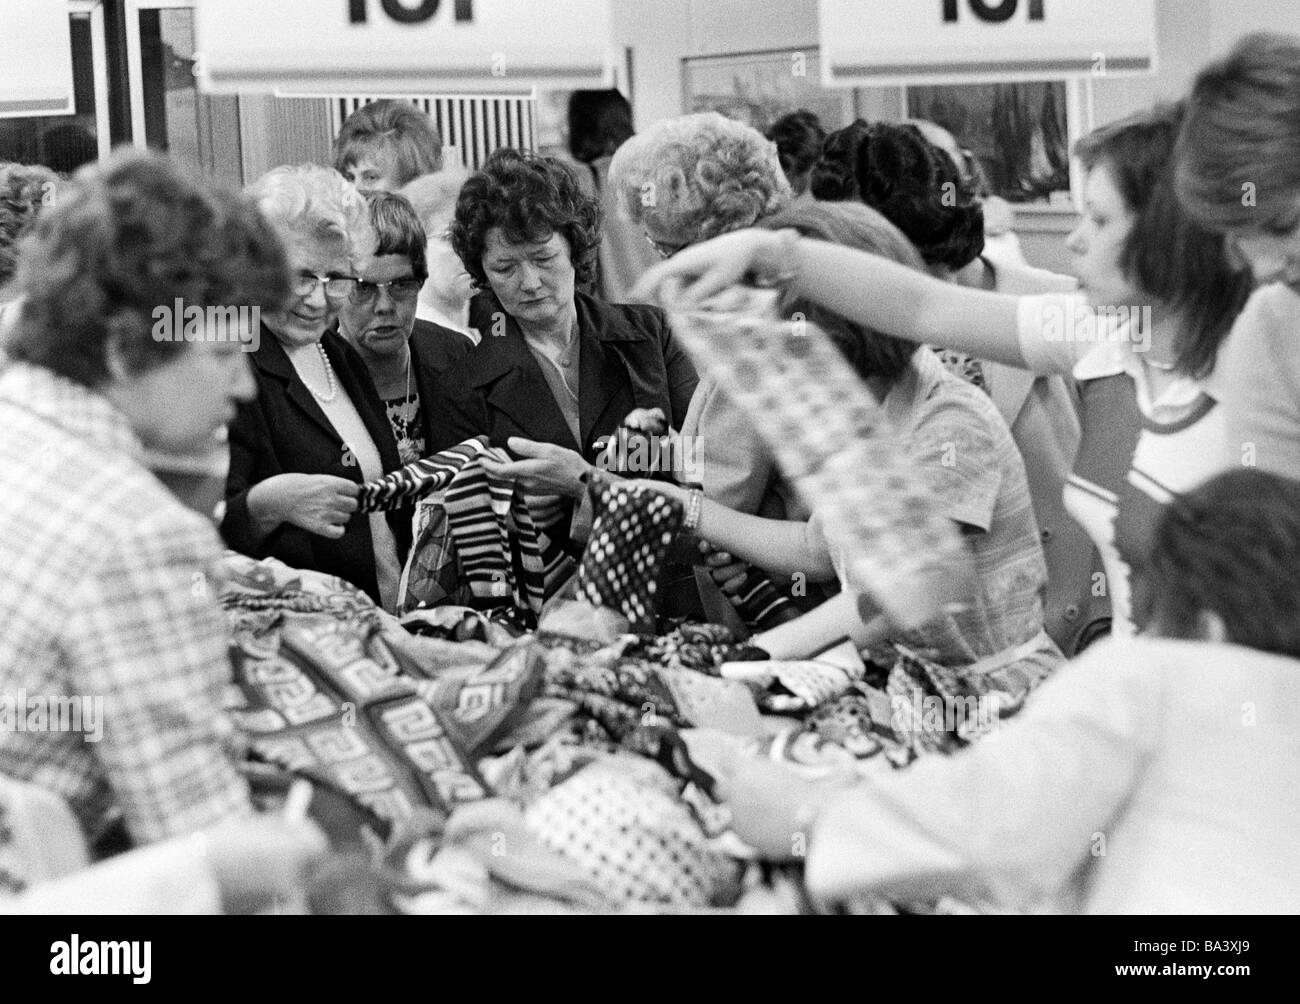 Seventies, black and white photo, people on shopping expedition, closing out sale, several women search for bargains - Stock Image